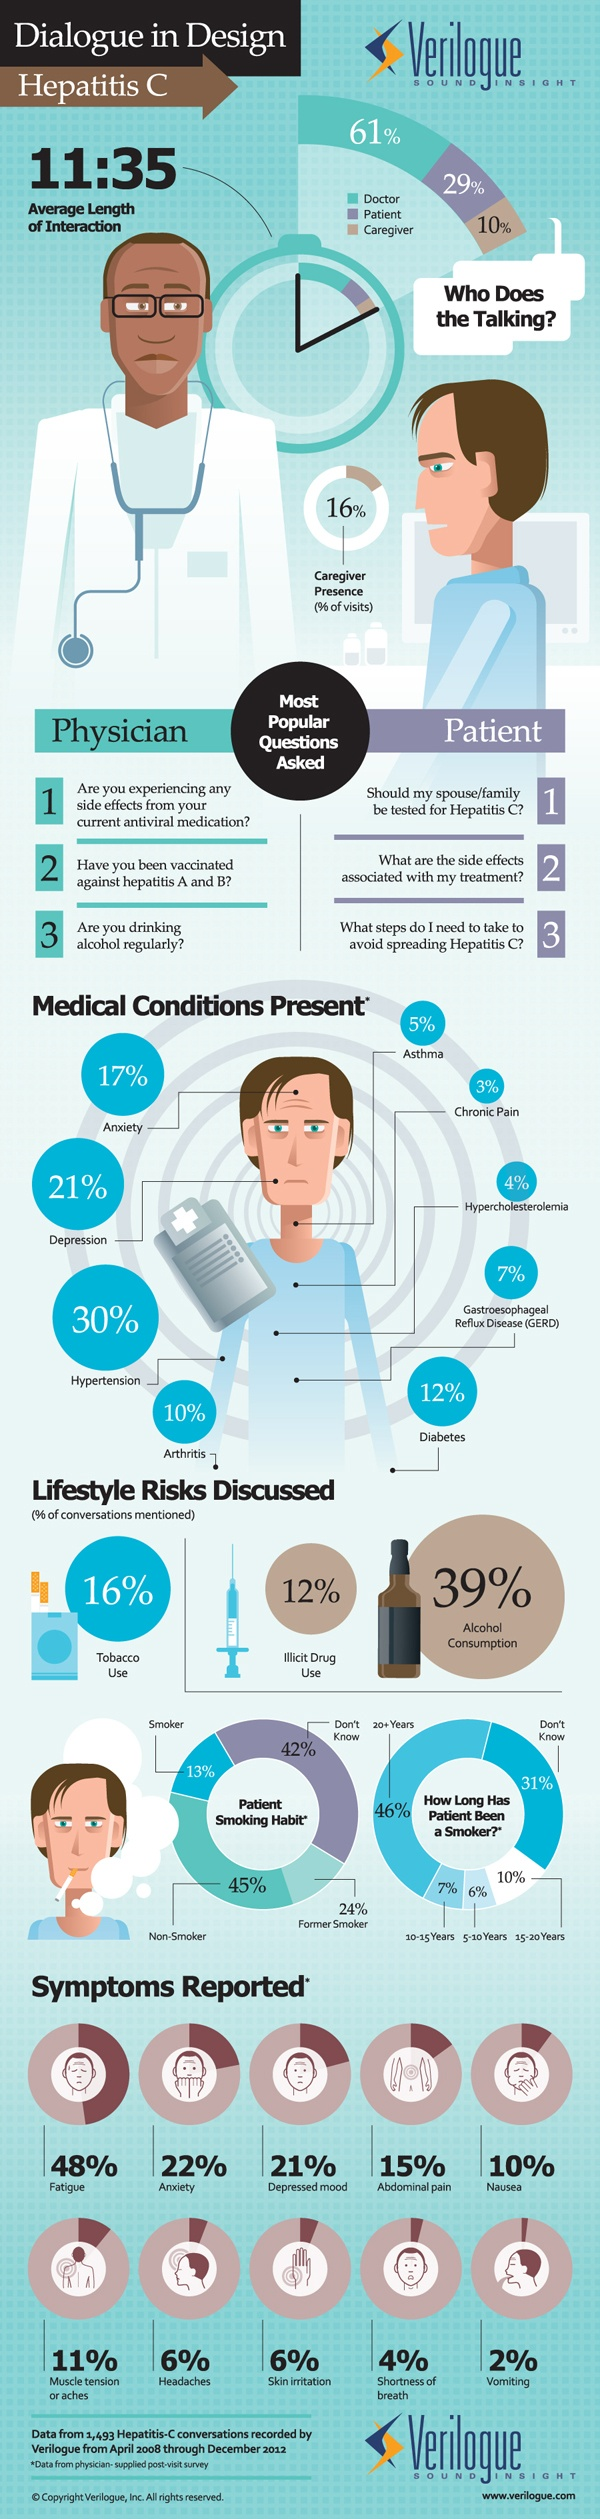 www.infographicbox.com  #INFOGRAPHIC Hepatitis C:  In this Dialogue in Design infographic, Verilogue draws insightful conversational insights from their collection of real Hepatitis C exam room interactions. How long is the average Hepatitis C physician-patient conversation? How is the conversational time split up between patients, physicians and caregivers? What are the top questions asked by patients? By physicians? What are the reported symptoms of patients suffering from Hepatitis C?